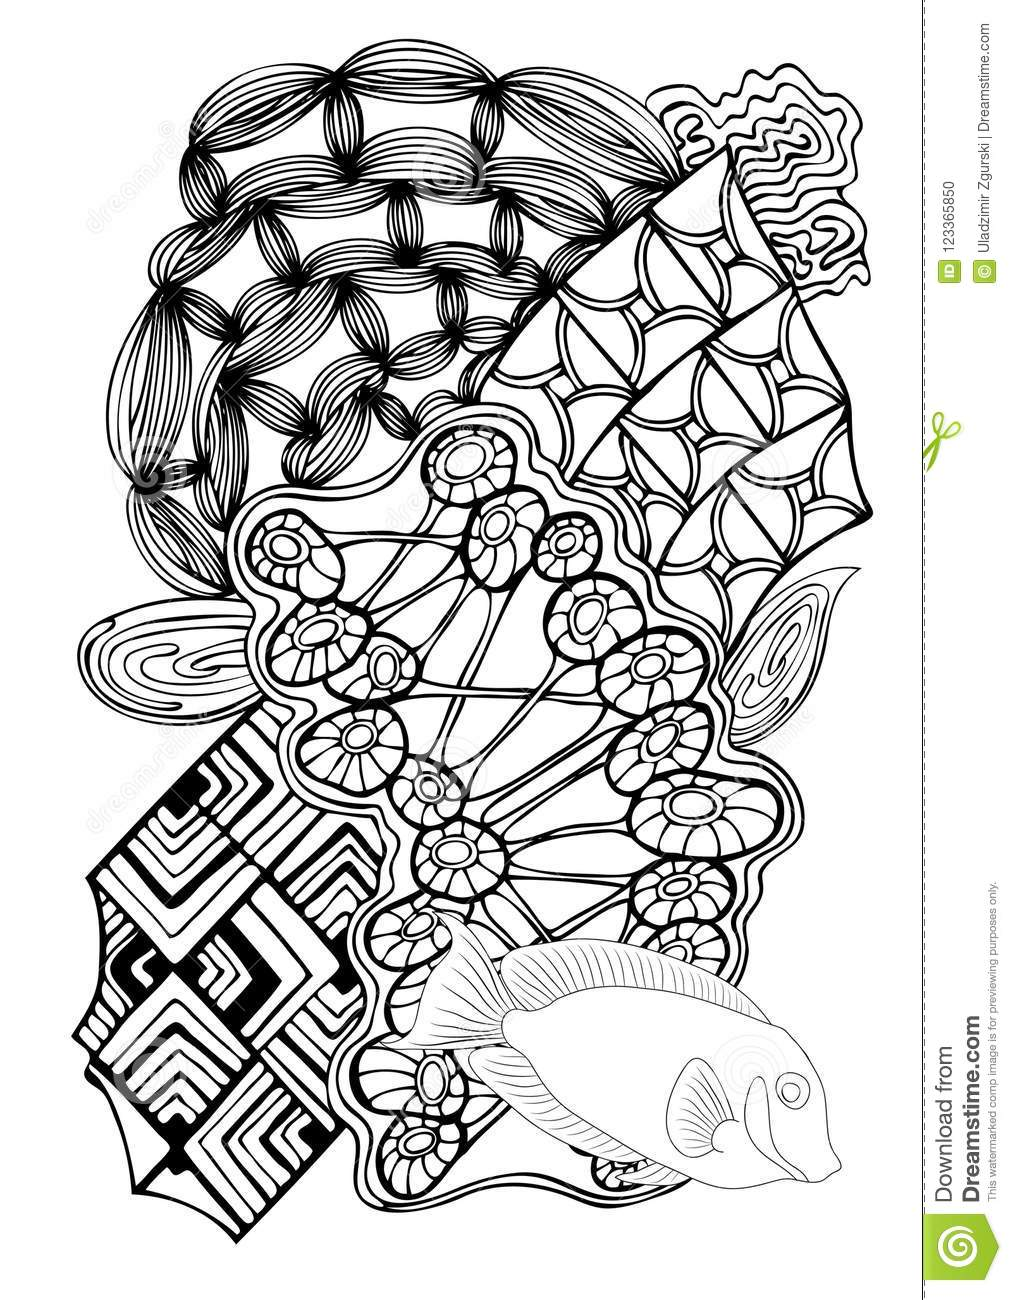 Hand Drawn Page In Zendoodle Style For Adult Coloring Book Abst